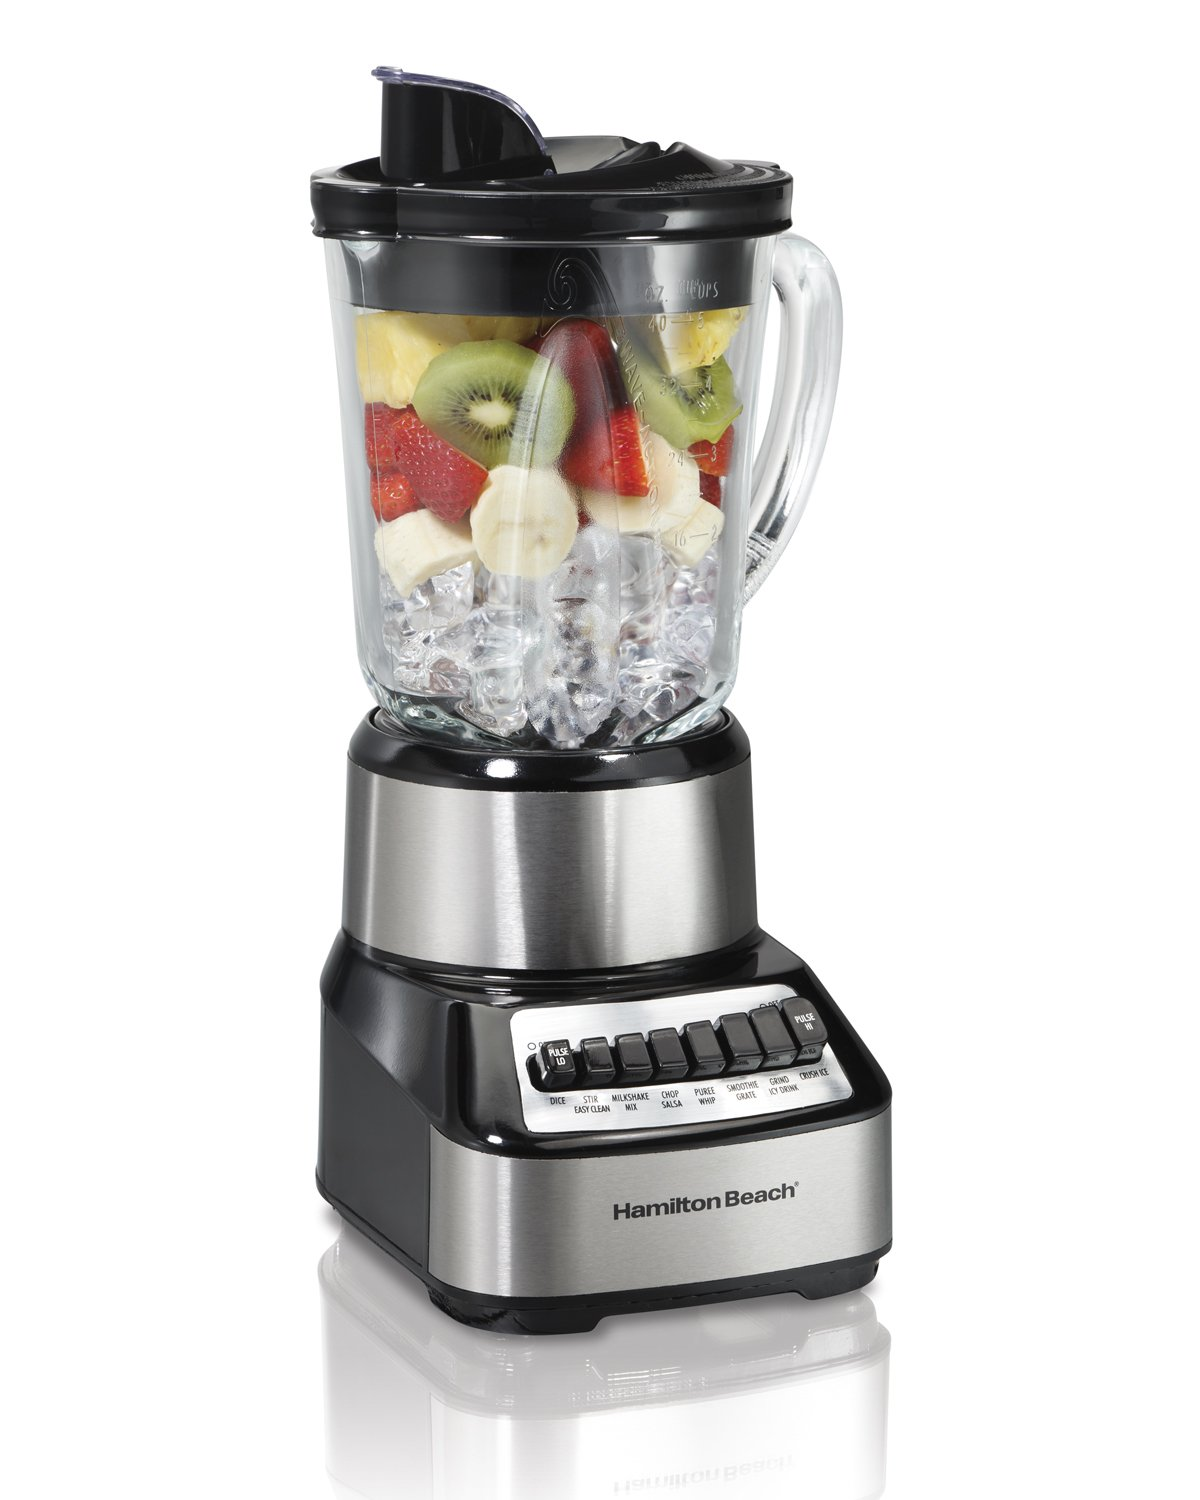 Hamilton Beach Wave Crusher Blender with 40oz Glass Jar and 14 Functions for Puree, Ice Crush, Shakes and Smoothies, Stainless Steel (54221) by Hamilton Beach